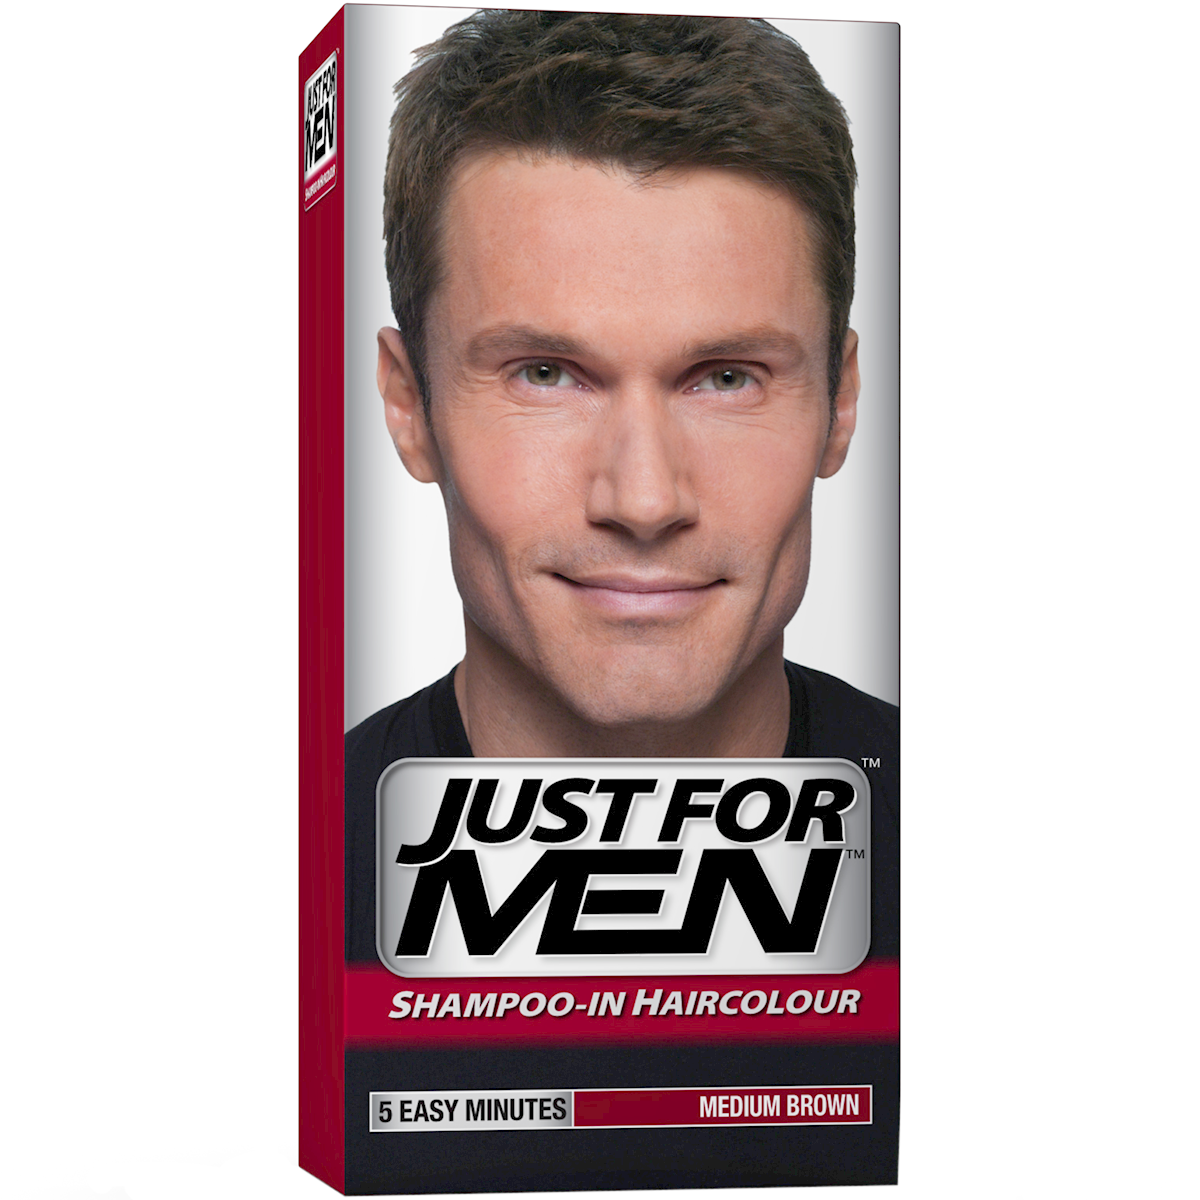 Just For Men Original Formula Just For Men Hair Colour, H-35 Medium Brown